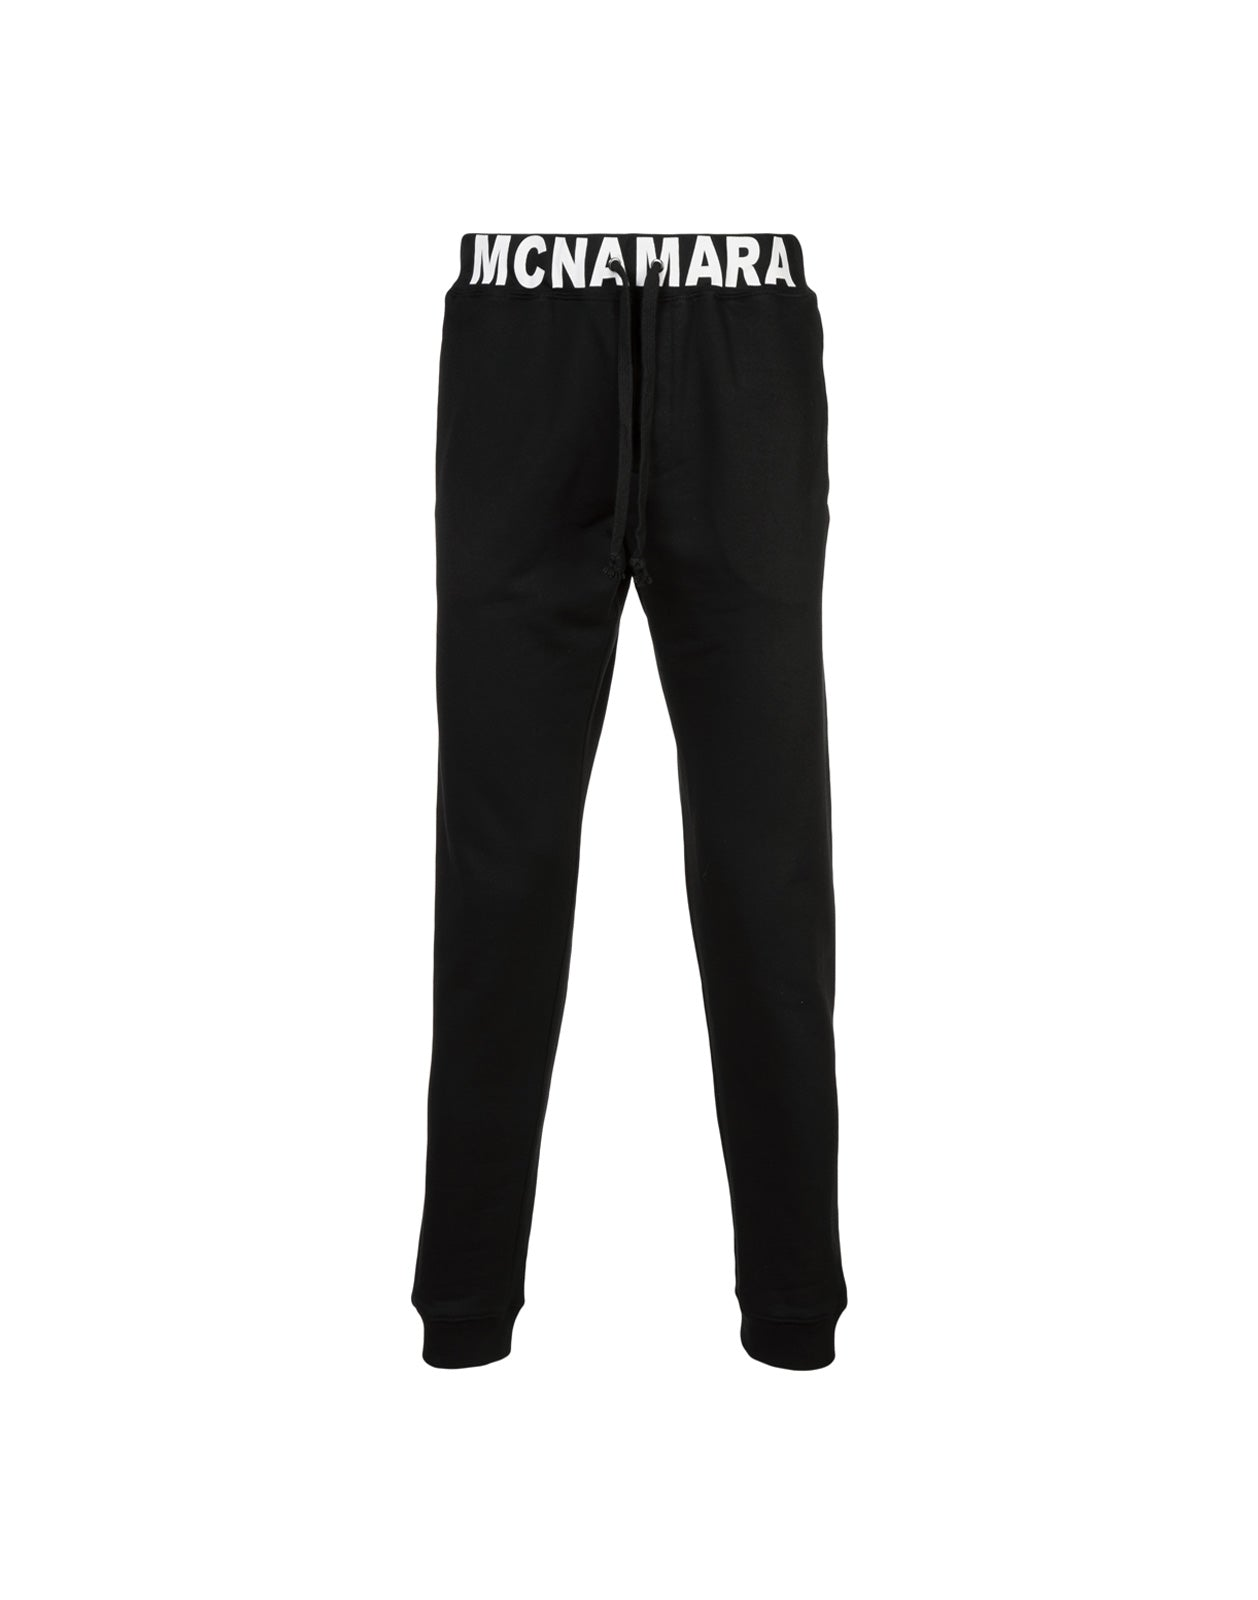 Midnight MCNAMARA Graphic Jogger Pants